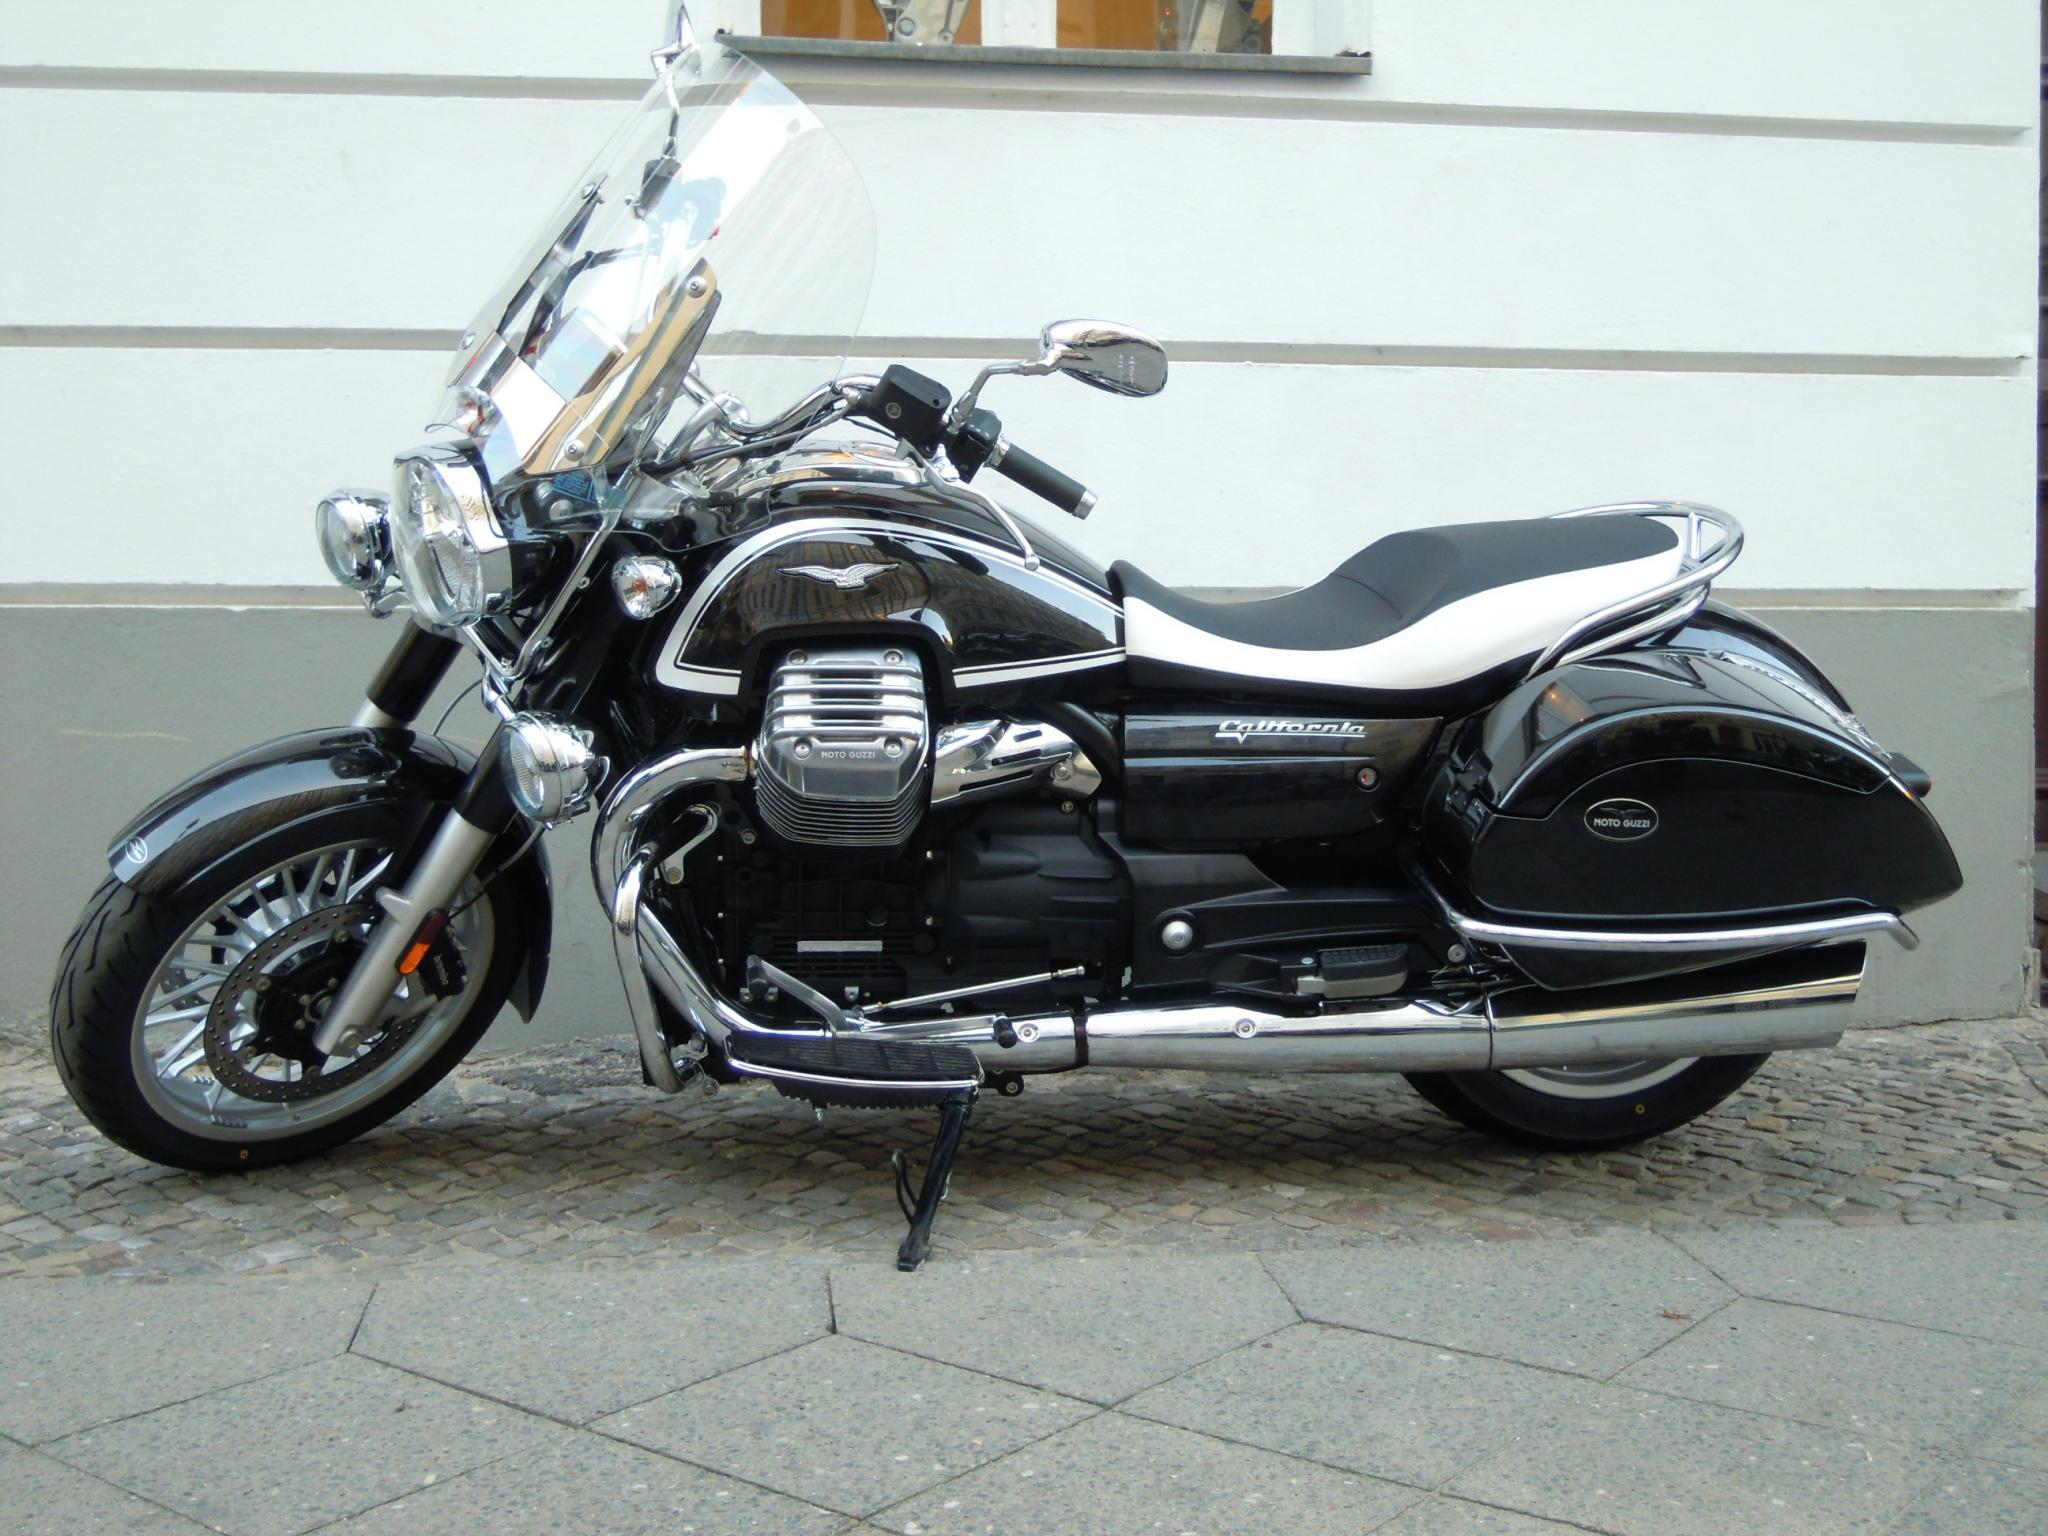 Moto Guzzi California 1400 Touring #2